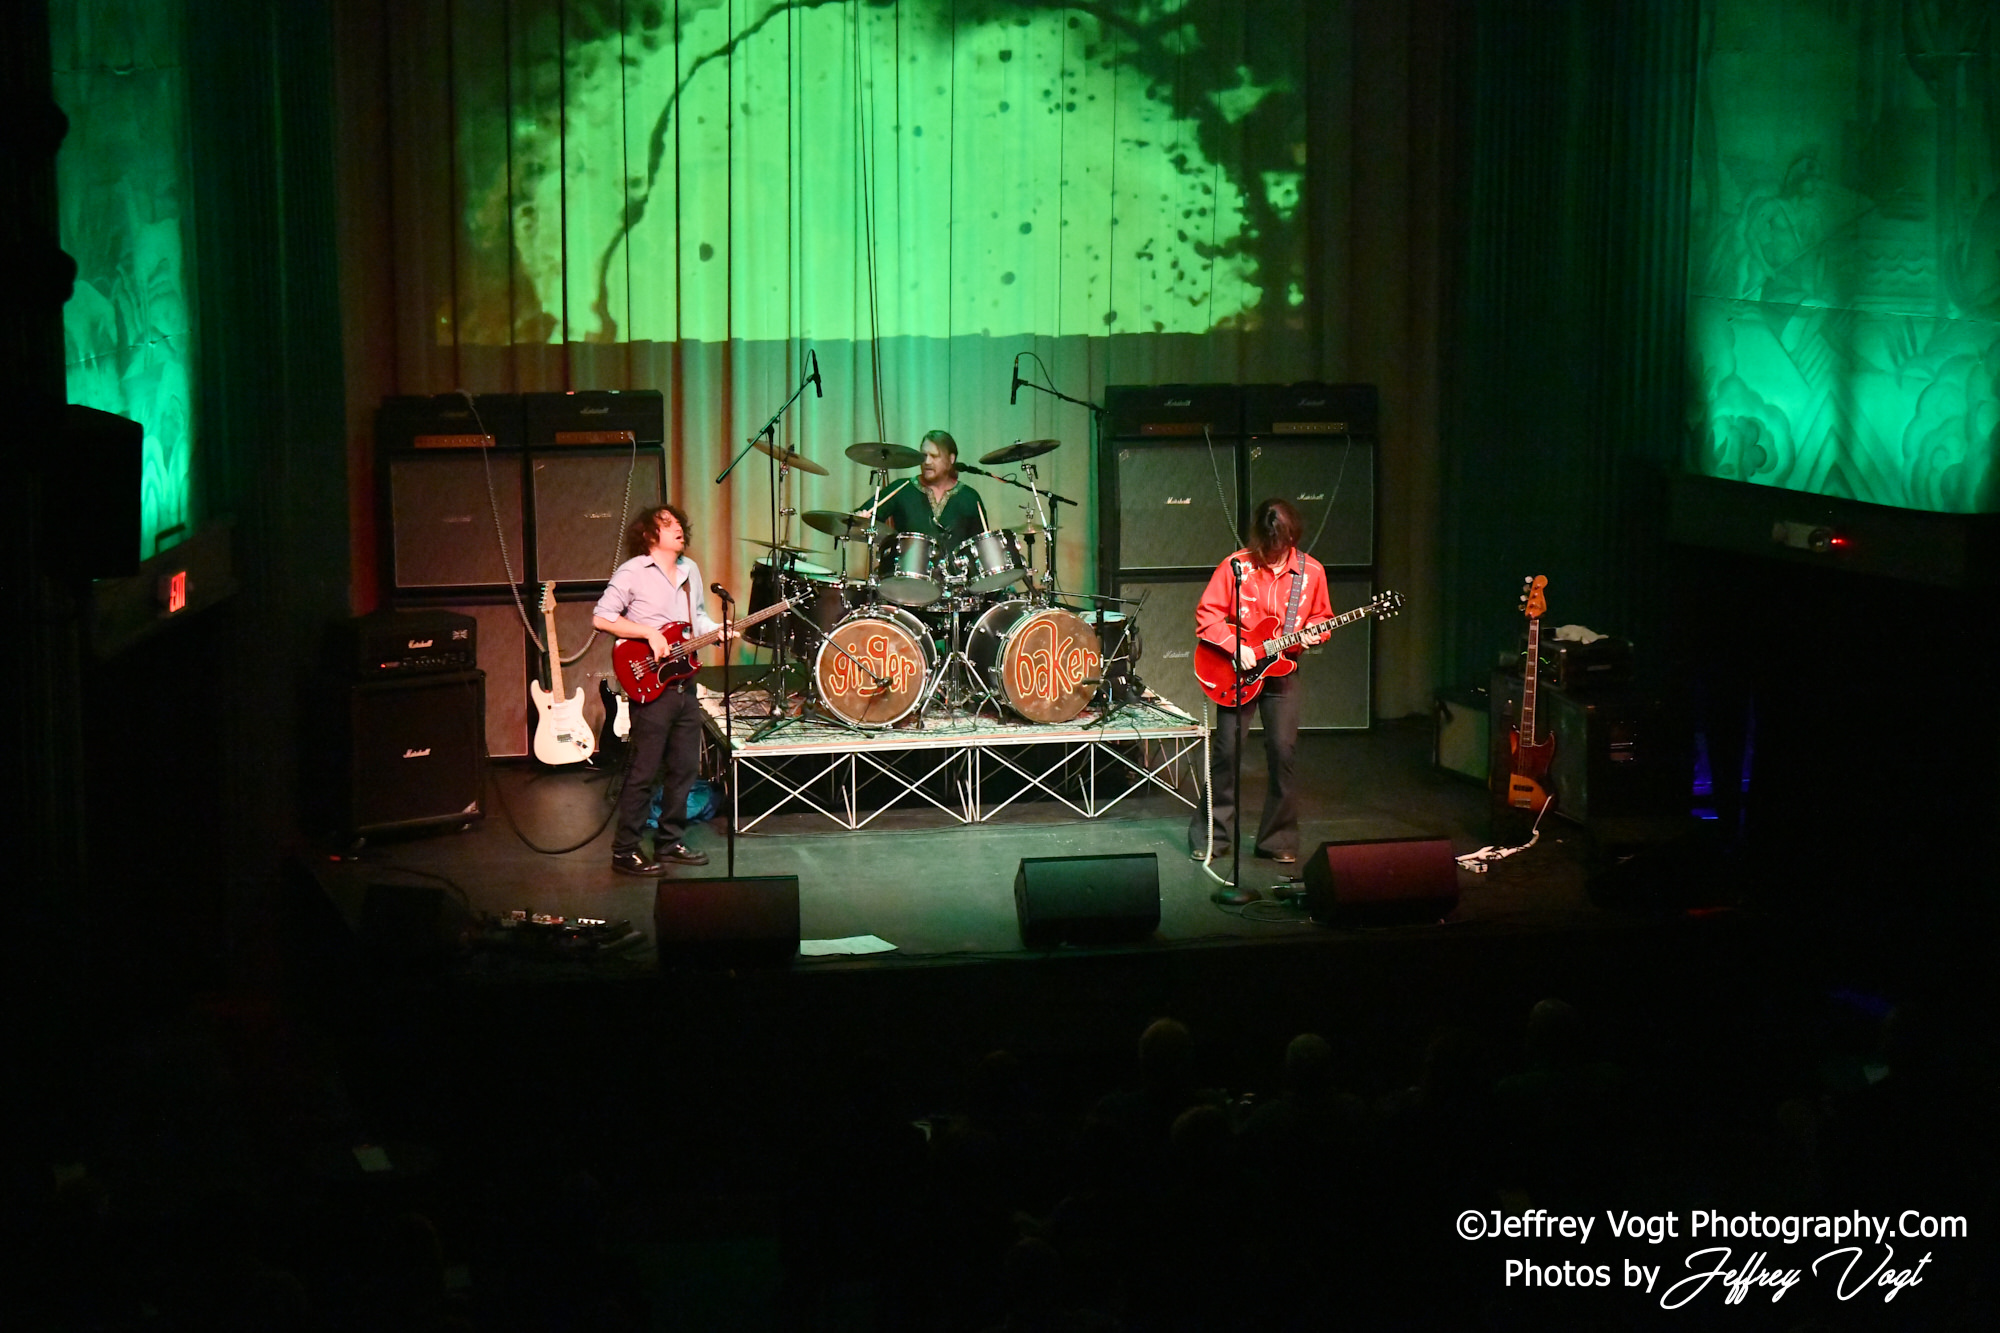 Concerts; Bands; Heavy Cream; Cameras; Nikon 10.5 F2.8; Nikon 200-400 F4; Nikon Camera; Nikon D850; Nikon DSLR; Tamron 24-75 F2.8; Steve Lannettoni; Sam Gutman; Heavy Cream - The Super Group Tribute To Cream & Blind Fsith; Dion Paci; Cream; 11/01/2019; Alternative Rock; Band; Band Photo; Band Photographer; Band Photography; Band Photos; Bass Guitarist; Billy Thoden; Blind Faith; Classic Rock; Concert; Concert Photo; Concert Photographer; Concert Photography; Concert Photos; Cover Bands; Cover Songs; Delaware; DMV Music; DMV Music Photographer; DMV Music Photography; DMV Music Photos; Drummer; Event Dates; Genres; Gig; Gig Photographer; Gig Photography; Gig Photos; Hard Rock; Jeffrey Vogt; Jeffrey Vogt Photography; Jeffrey Vogt Photos; Lead Guitarist; Live Music; Live Music Photographer; Live Music Photography; Live Music Photos; Locations; Milton; Milton Delaware; Milton Theater; Music; Musicians; On Stage; On Stage Photographer; On Stage Photography; On Stage Photos; Photography by Jeffrey Vogt; Photos; Photos by Jeffrey Vogt; Pit Photographer; Pit Photography; Pit Photos; Rhythm Guitarist; Rock; Sherreder; The Milton Theater; Tour; Tribute; Tribute Band; Tributes; Venues; www.jeffreyvogtphotography.com;